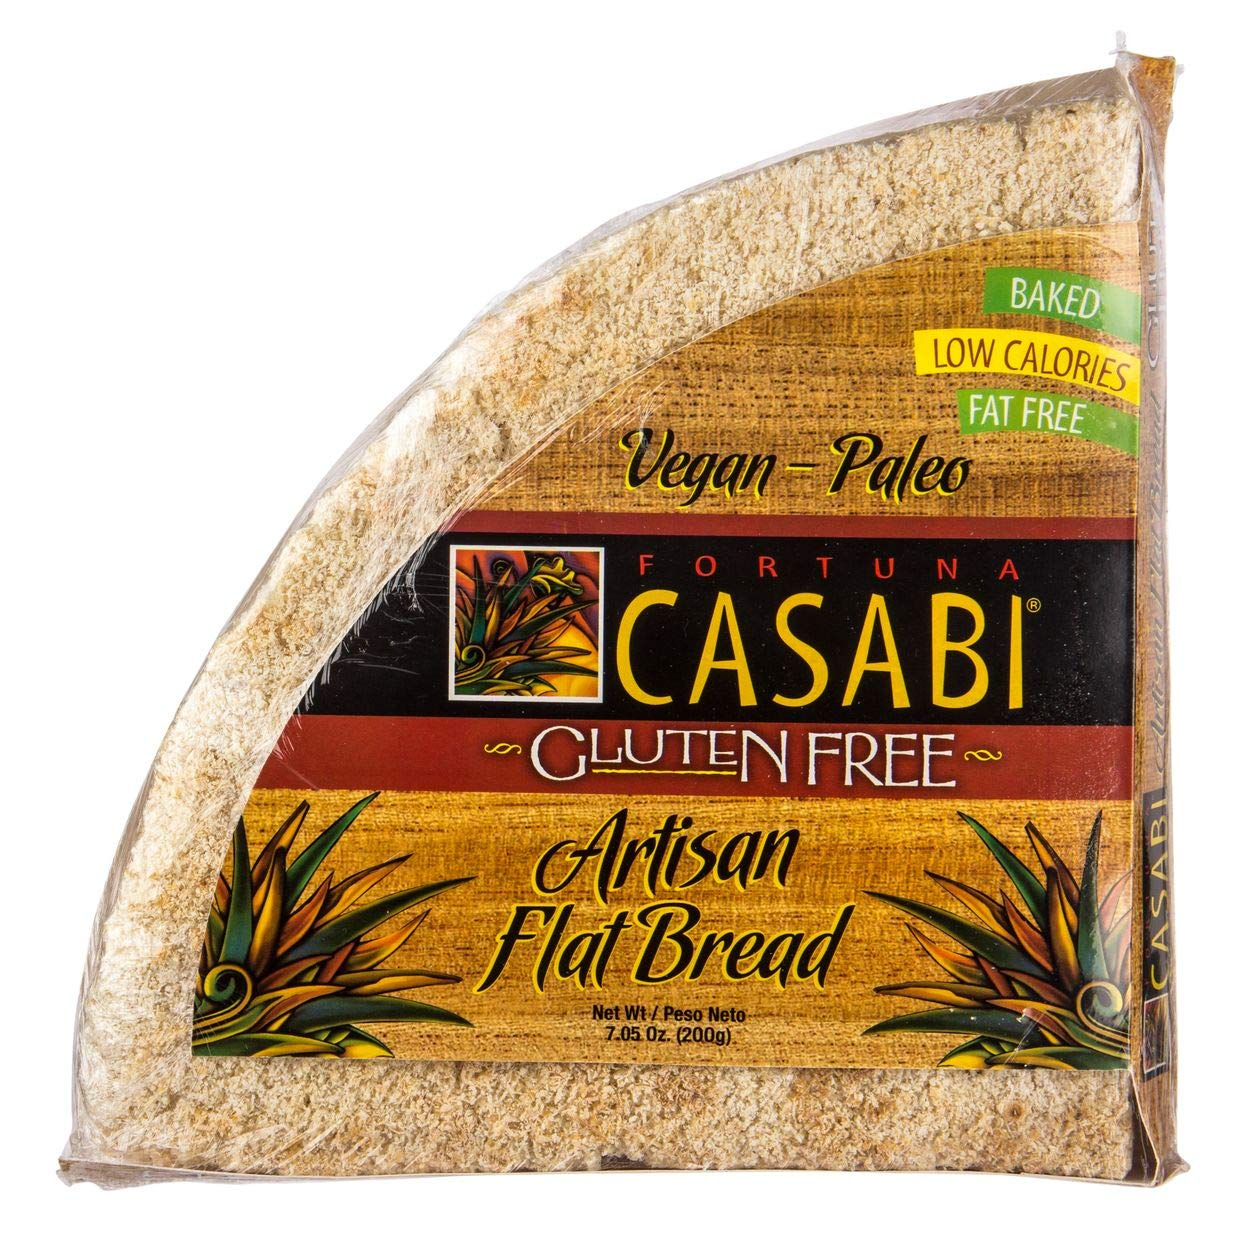 Casabi Casabe Artisan Flatbread (Cassava Bread), Naturally Gluten-Free (GF), Vegan, Paleo, Low Fodmap, AIP Friendly, Made of 100% Yuca Root. 7 oz/pack (1-Pack) by AMA'S Gluten Free Foods